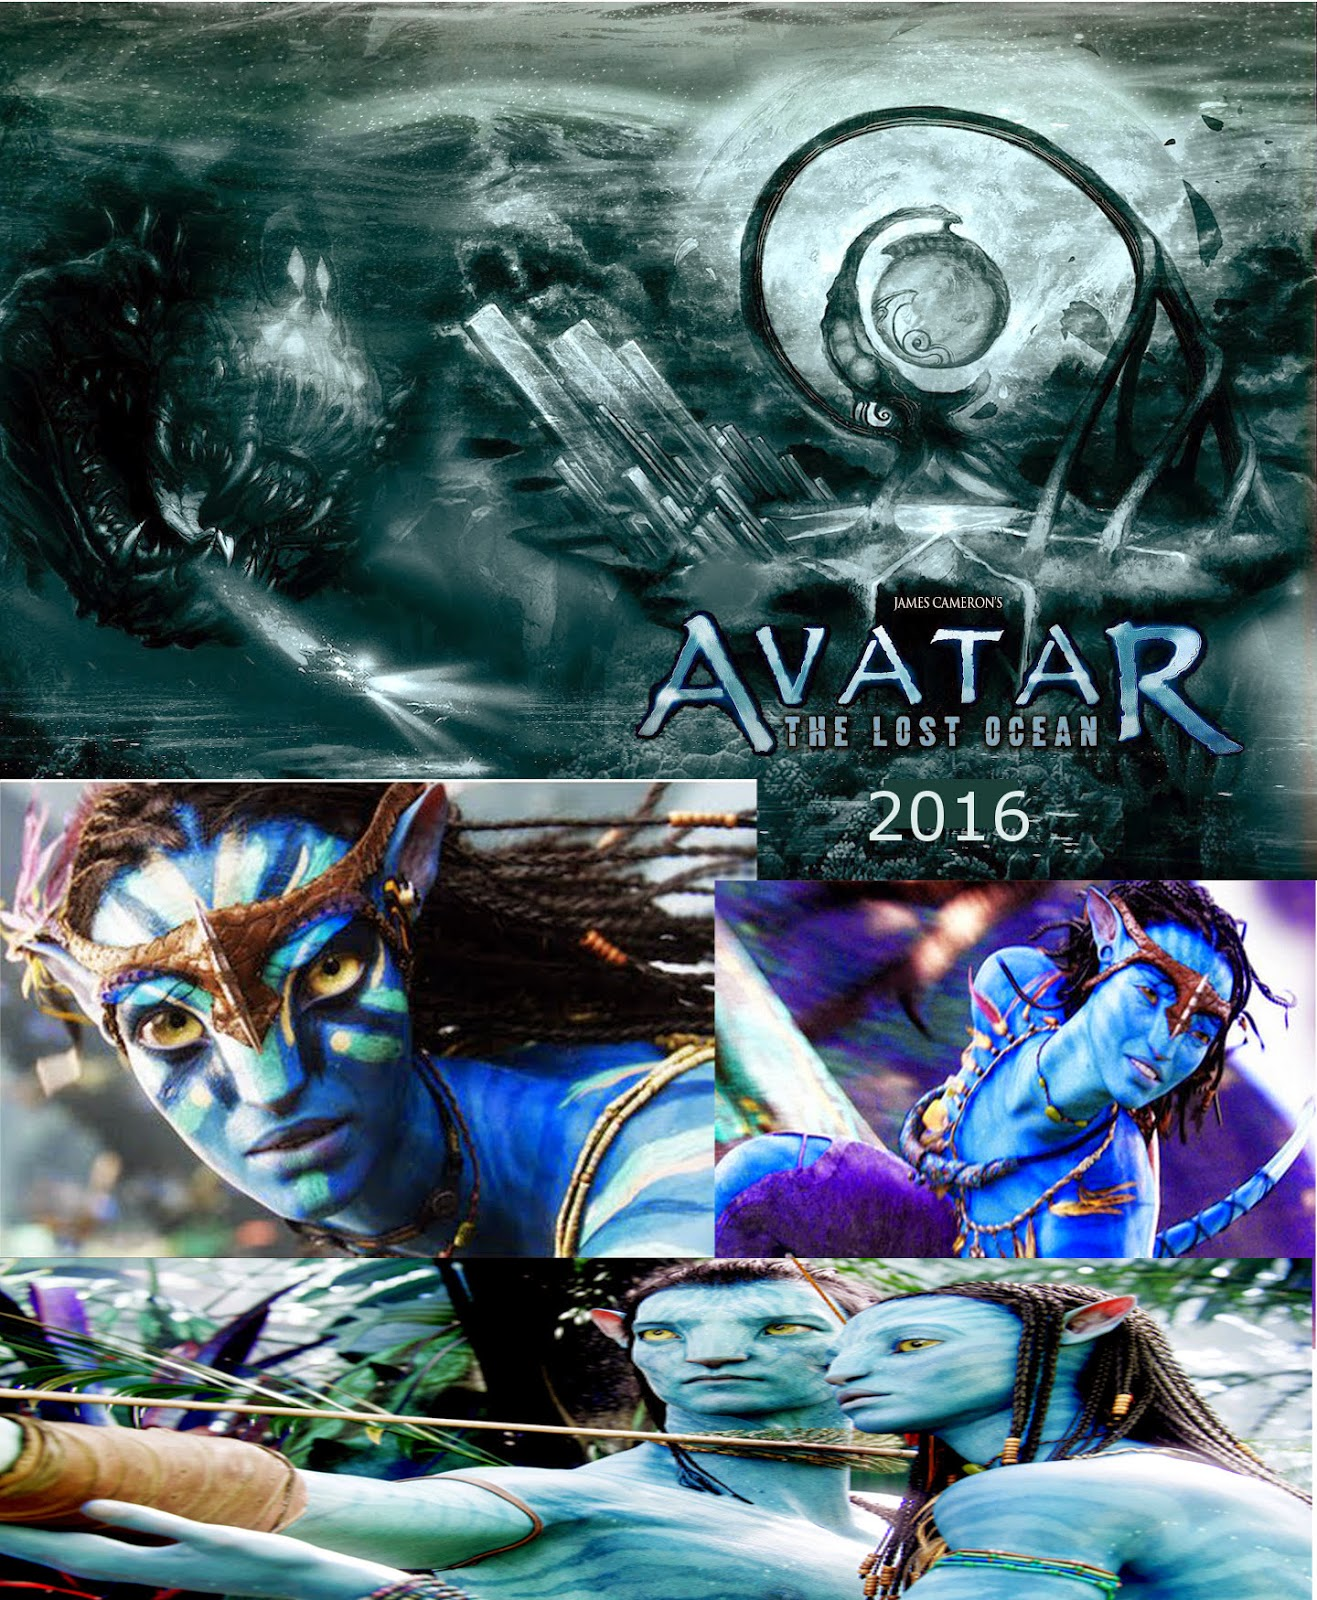 Avatar 2 Trailer The Lost Ocean